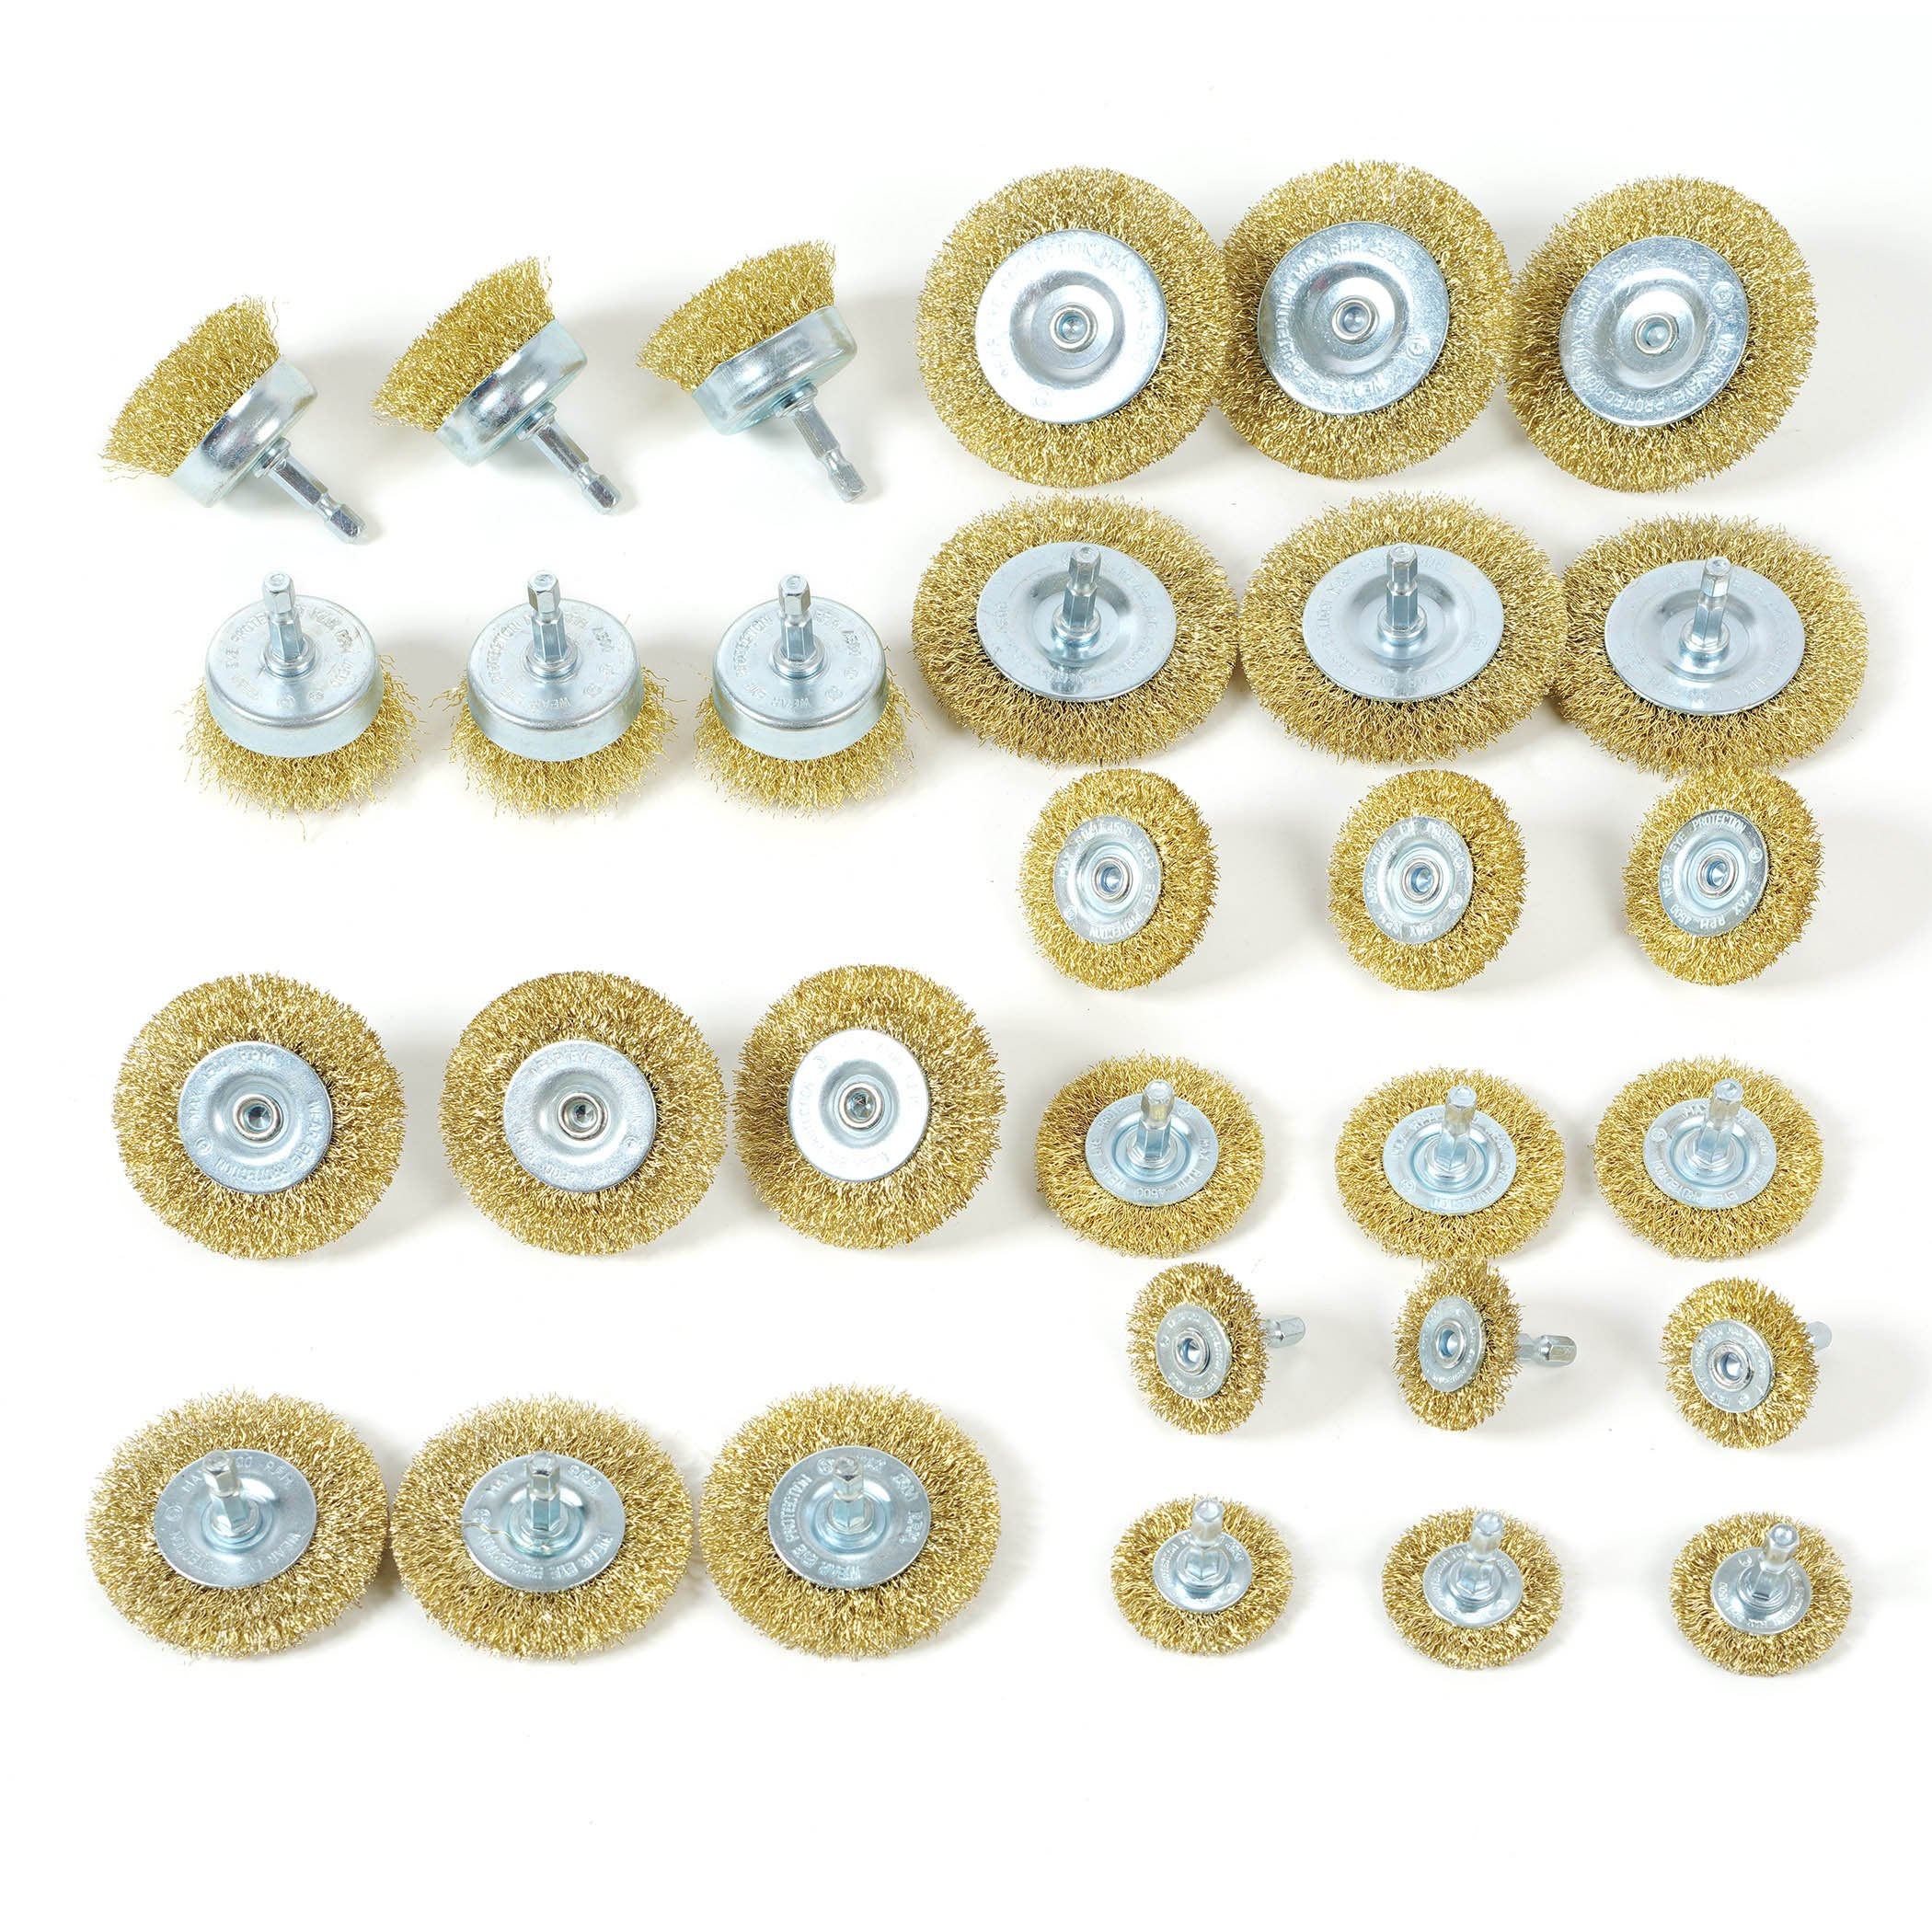 WORKPRO Wire Brush Wheels, 30-piece Cup Brush Set with 1/4-Inch Hex Shank